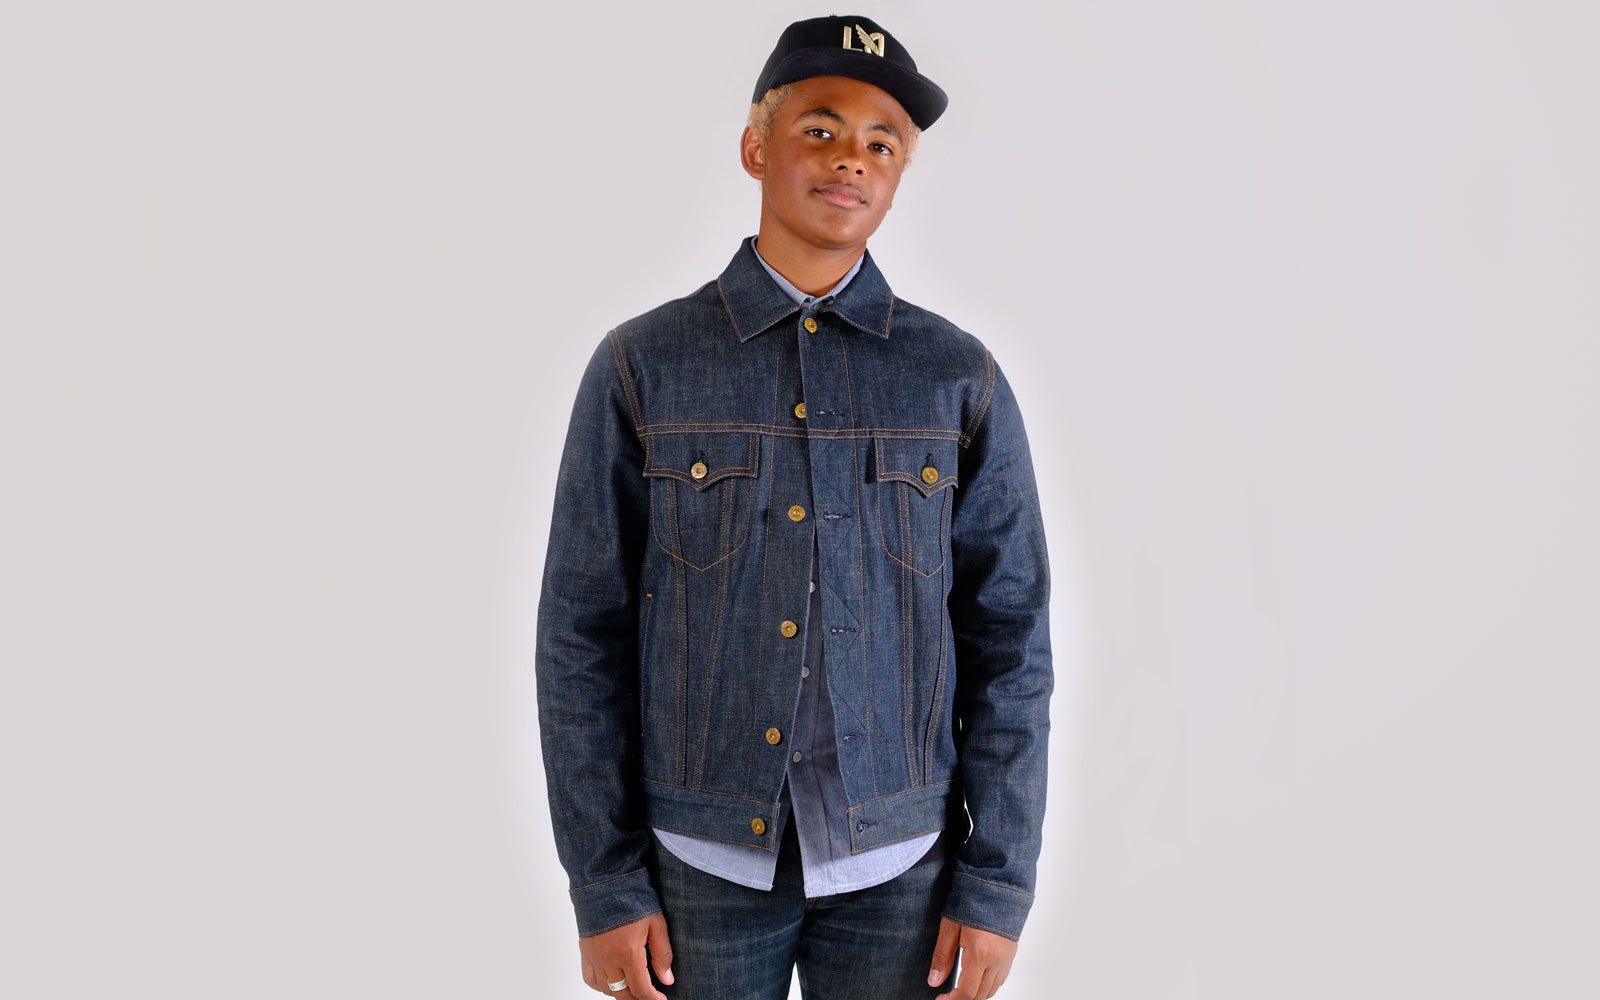 raw-selvage-denim-jeans and jackets